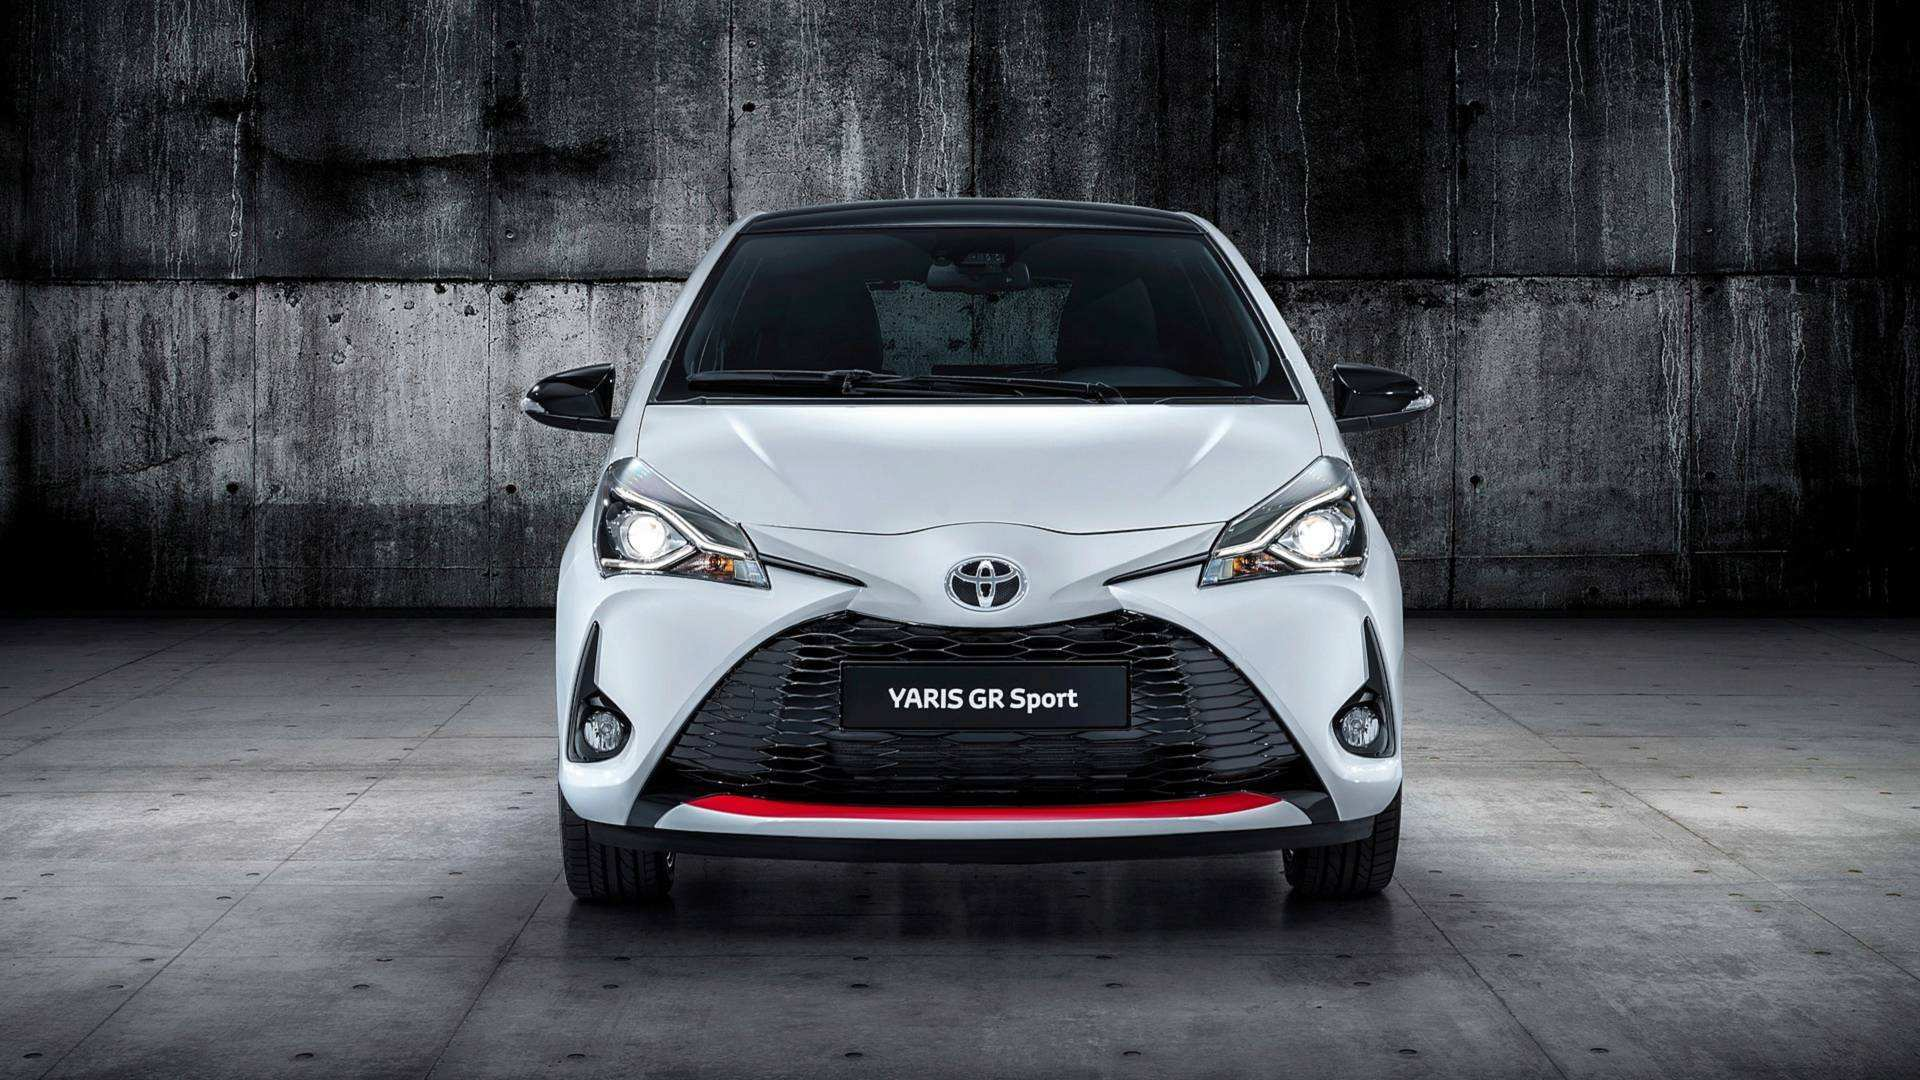 49 The 2019 Toyota Vitz Price and Review with 2019 Toyota Vitz